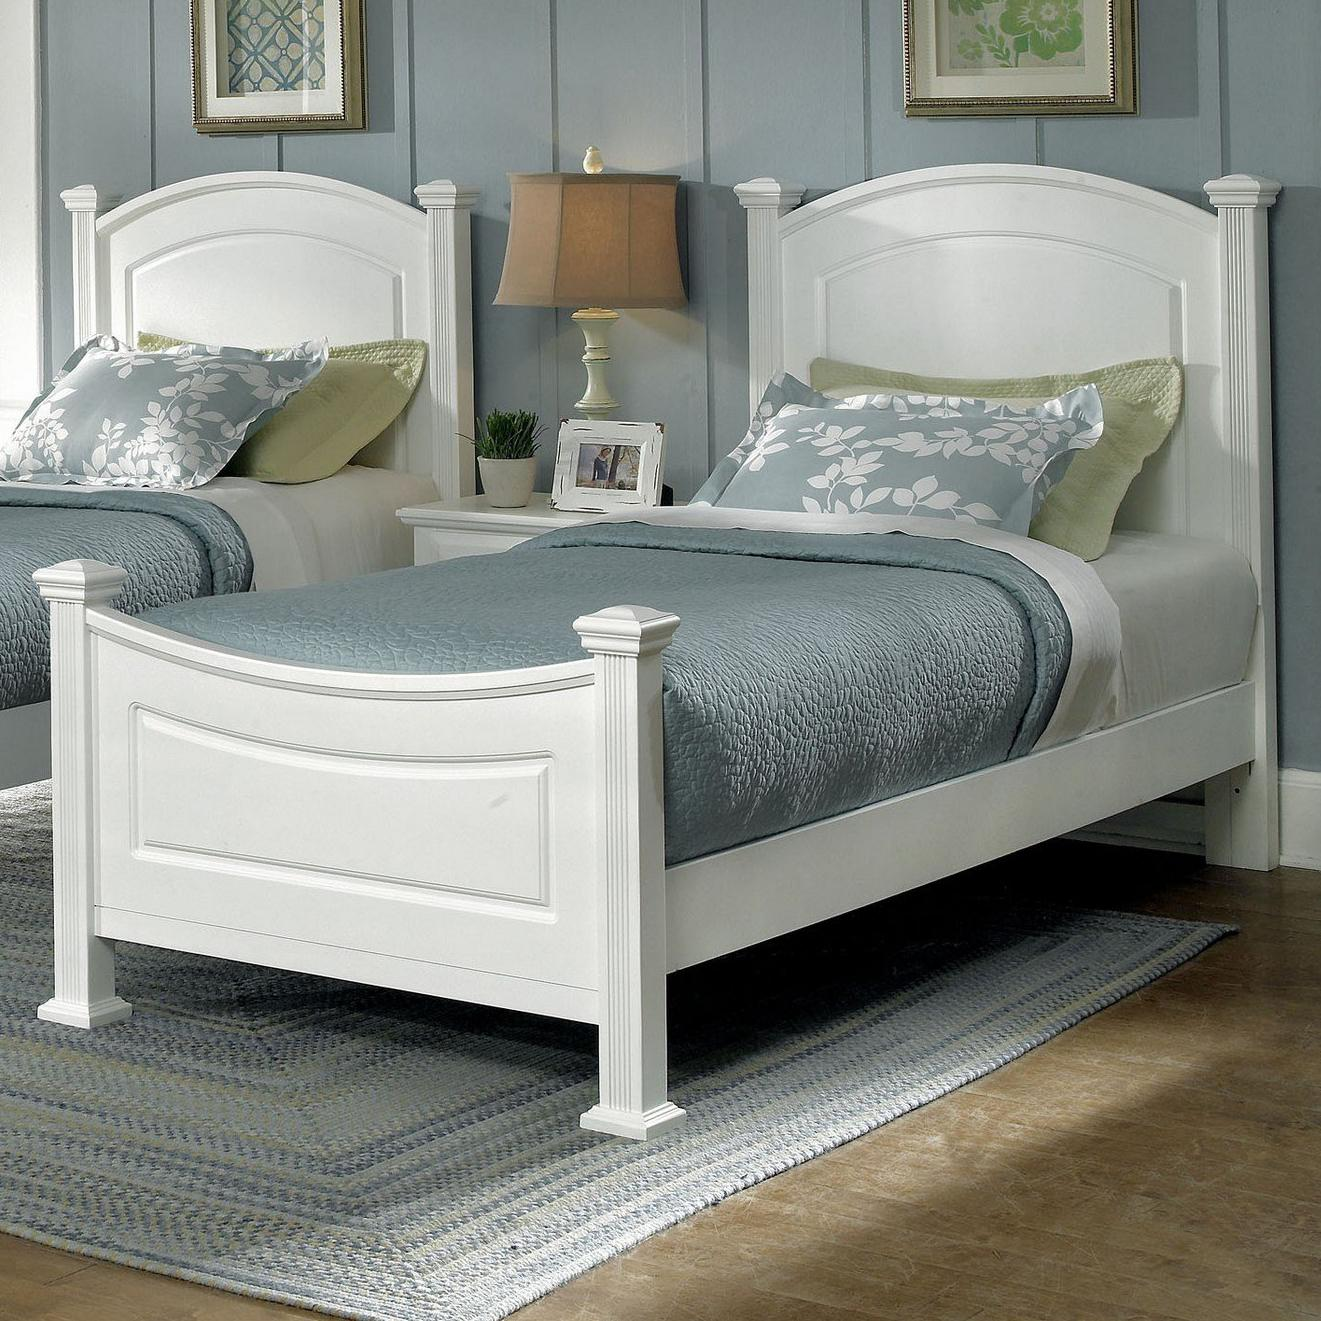 Hamilton/Franklin Twin Panel Bed by Vaughan Bassett at Johnny Janosik